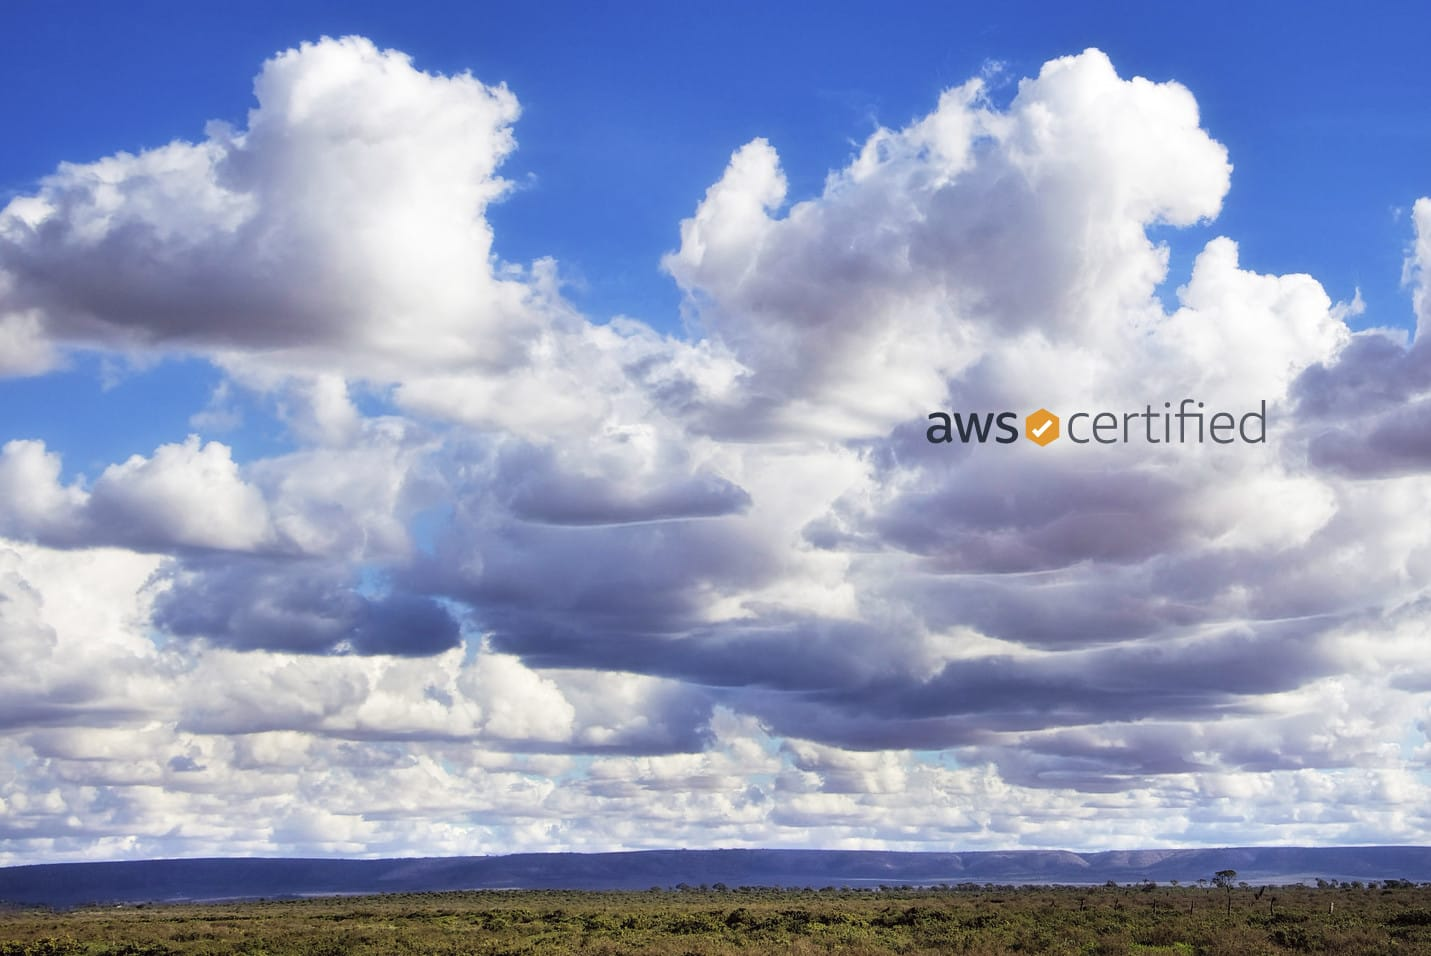 Picture of clouds with AWS Certified logo on top